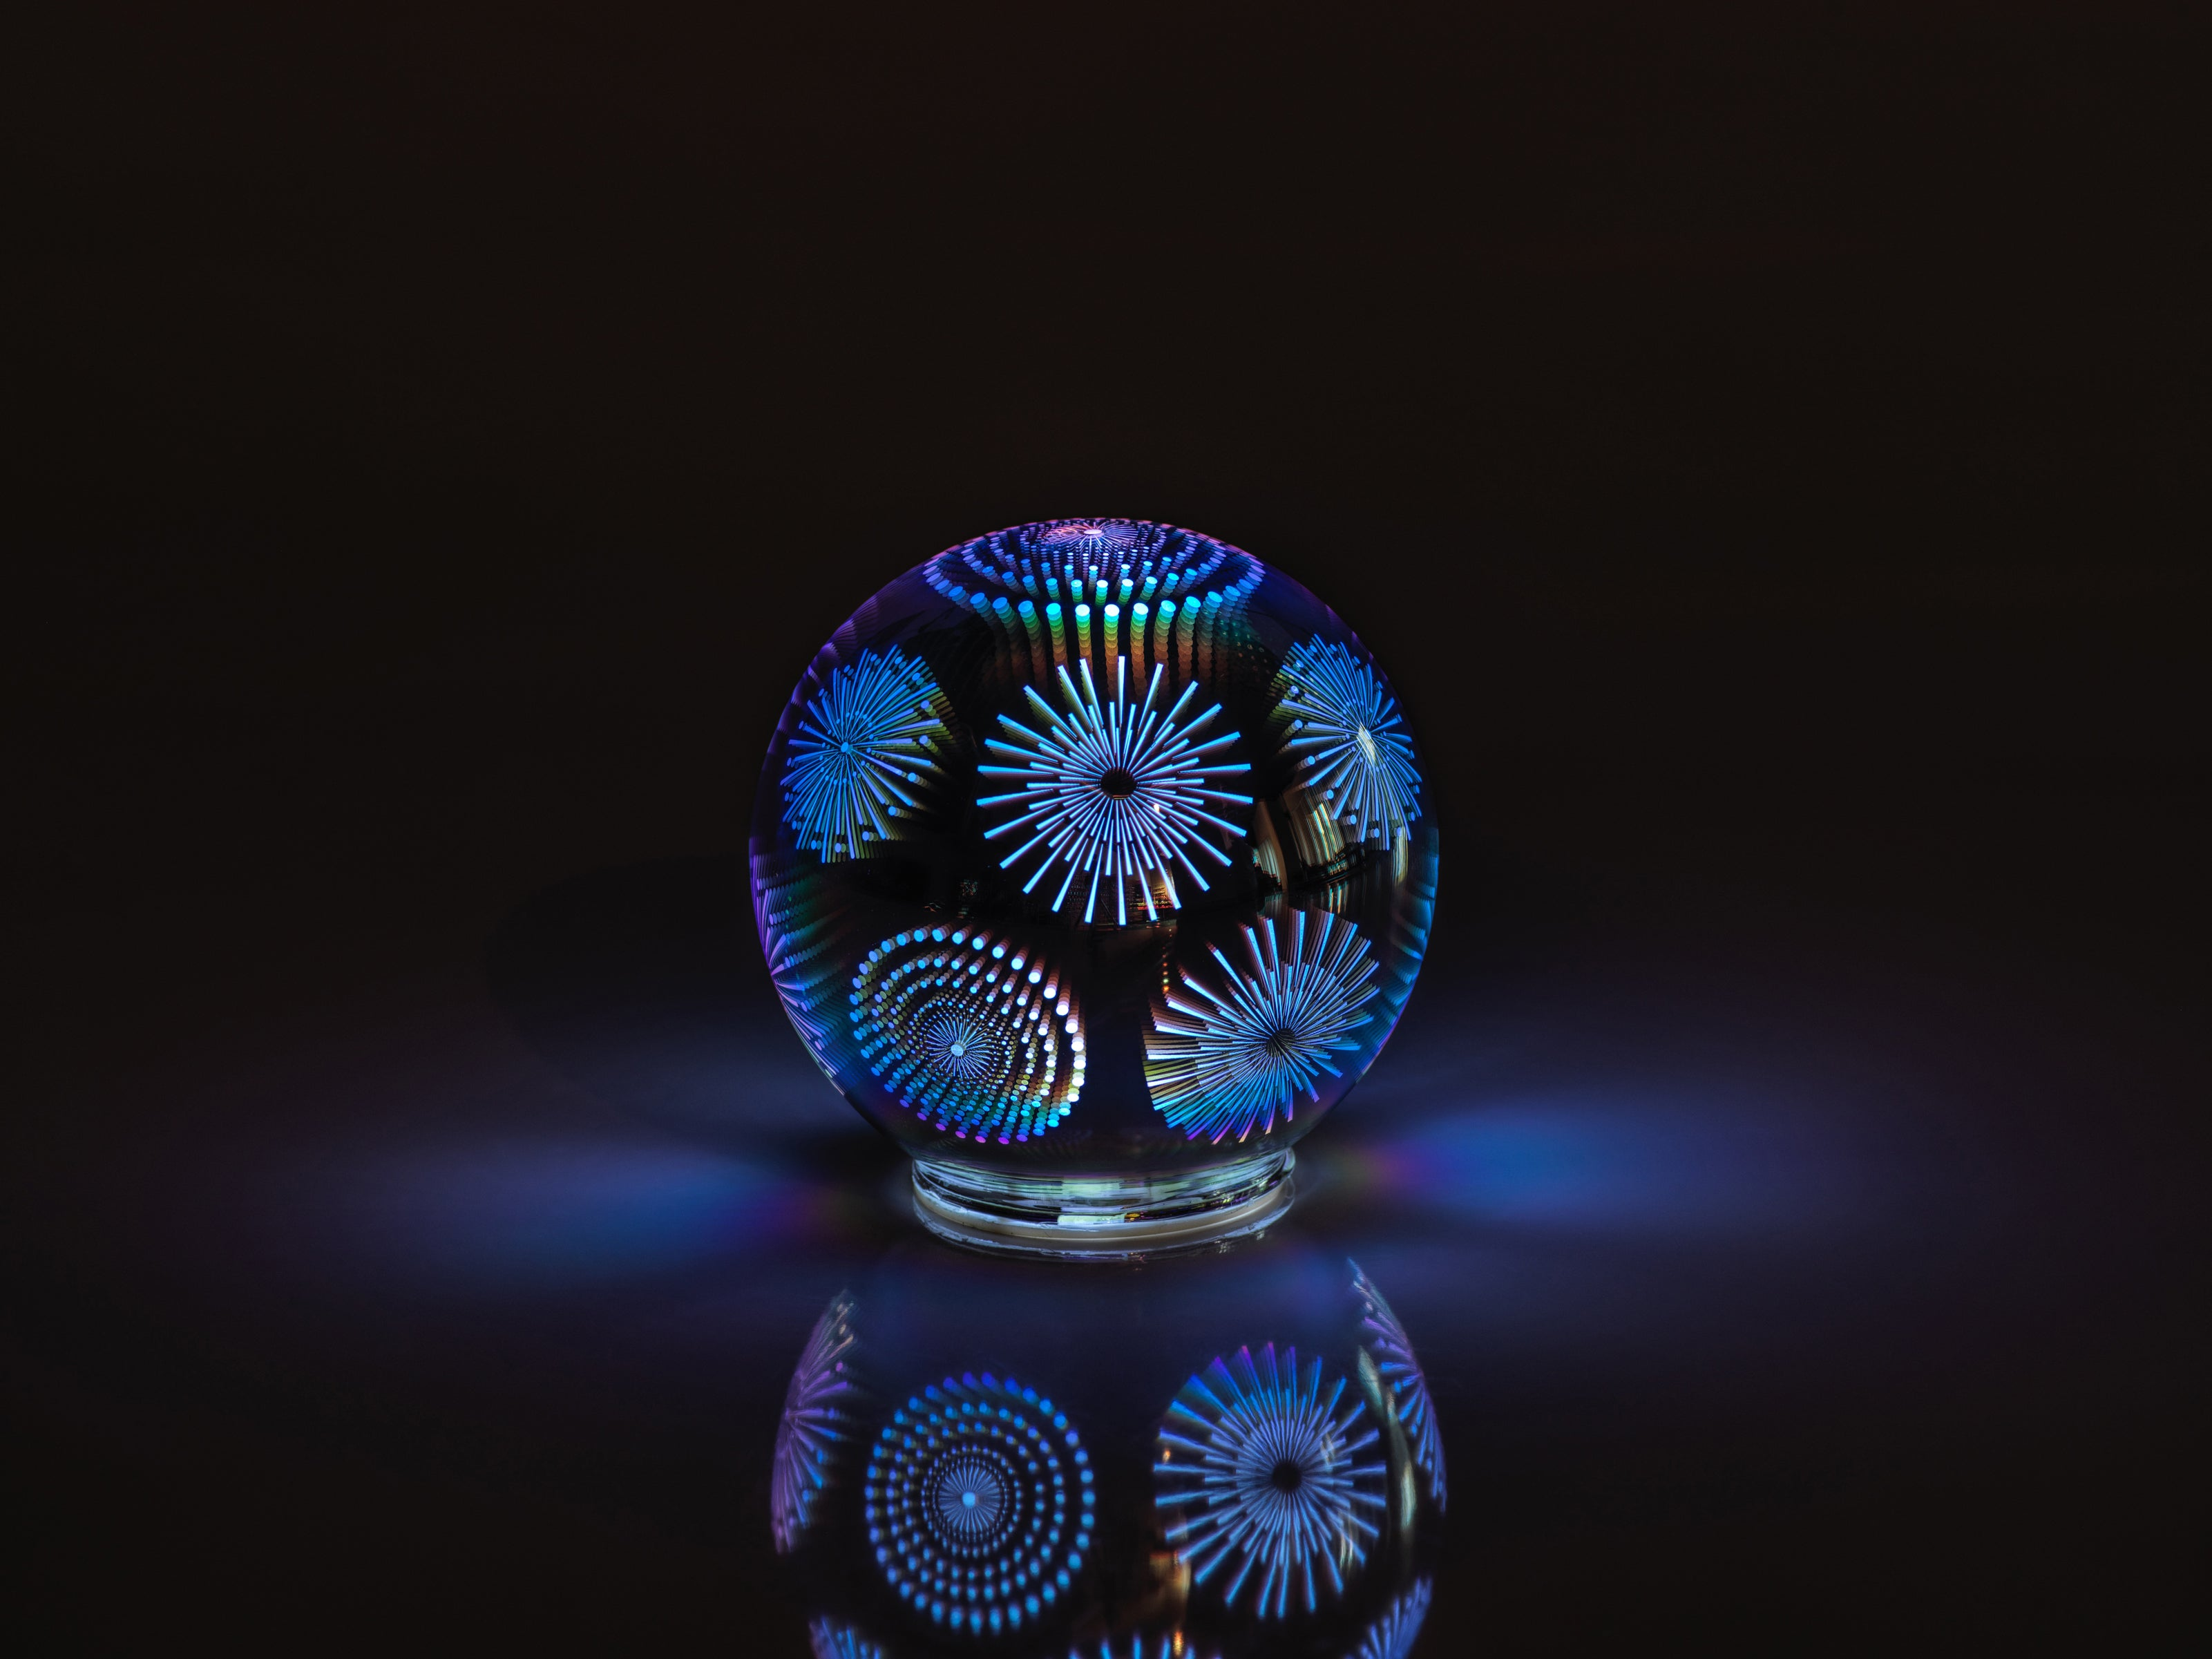 LED 3D Glass Balls - CARLYLE AVENUE